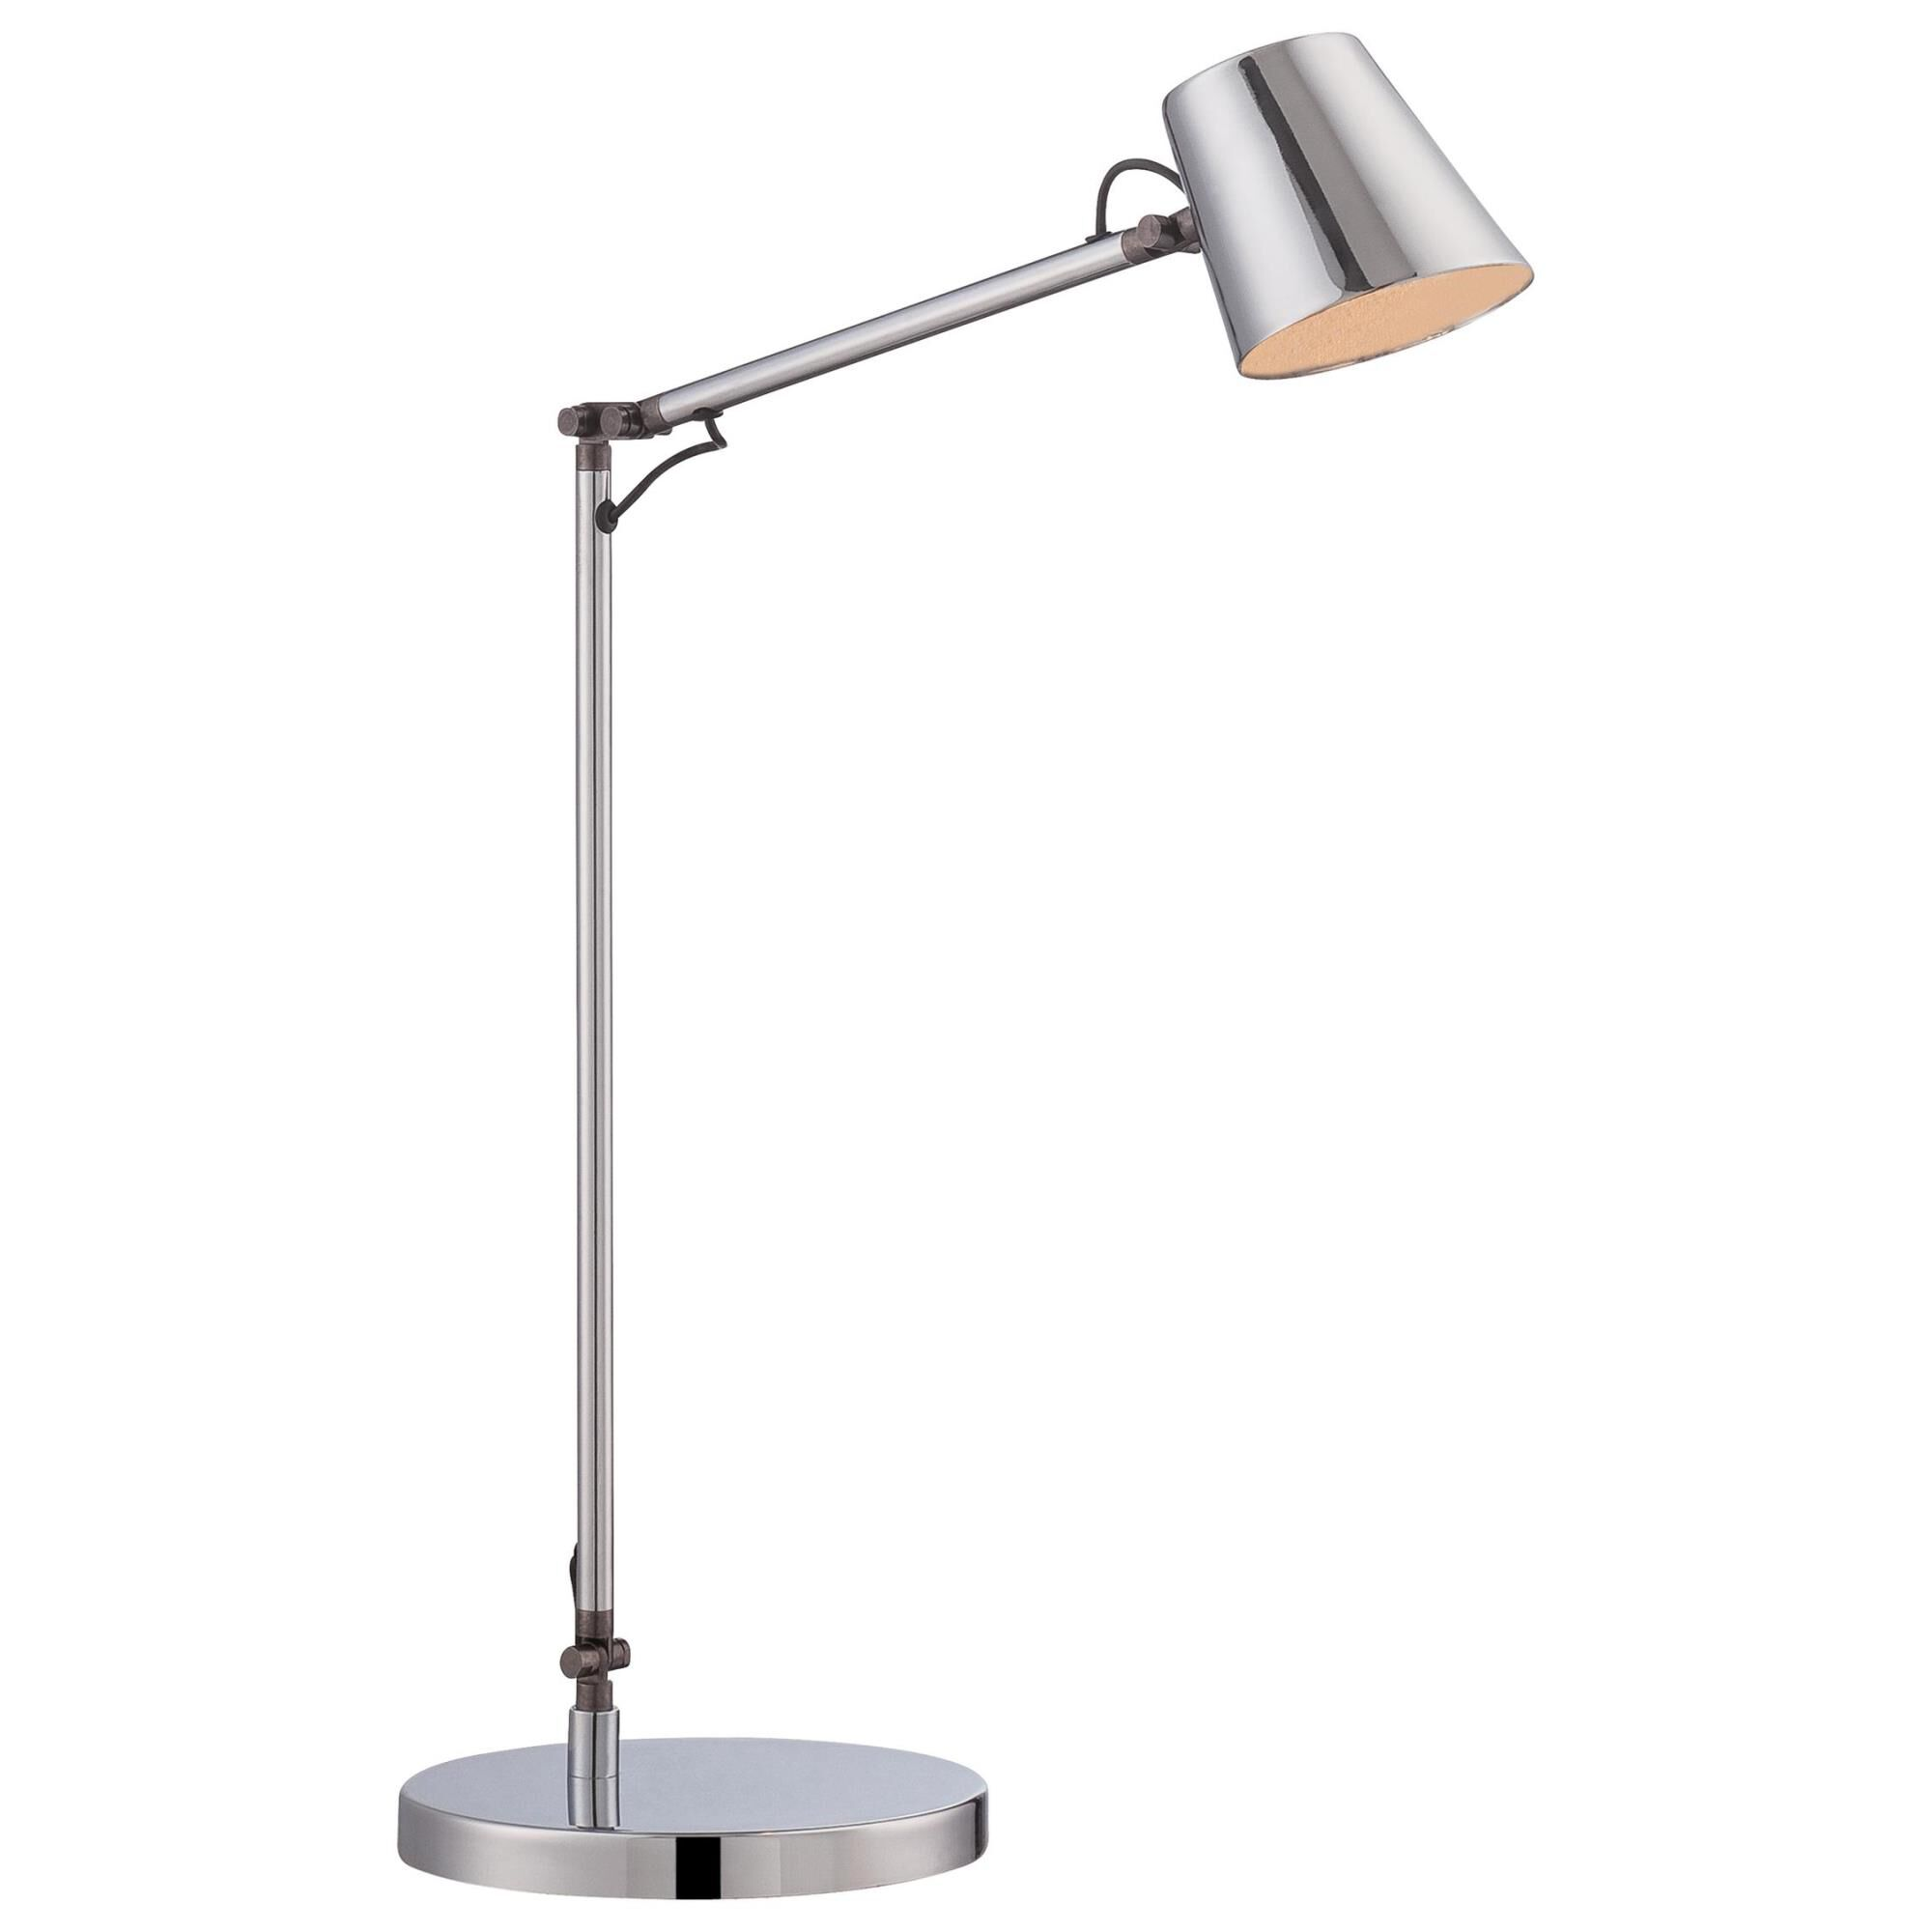 Kovacs 18 Inch Desk Lamp - P303-1-077-l - Transitional